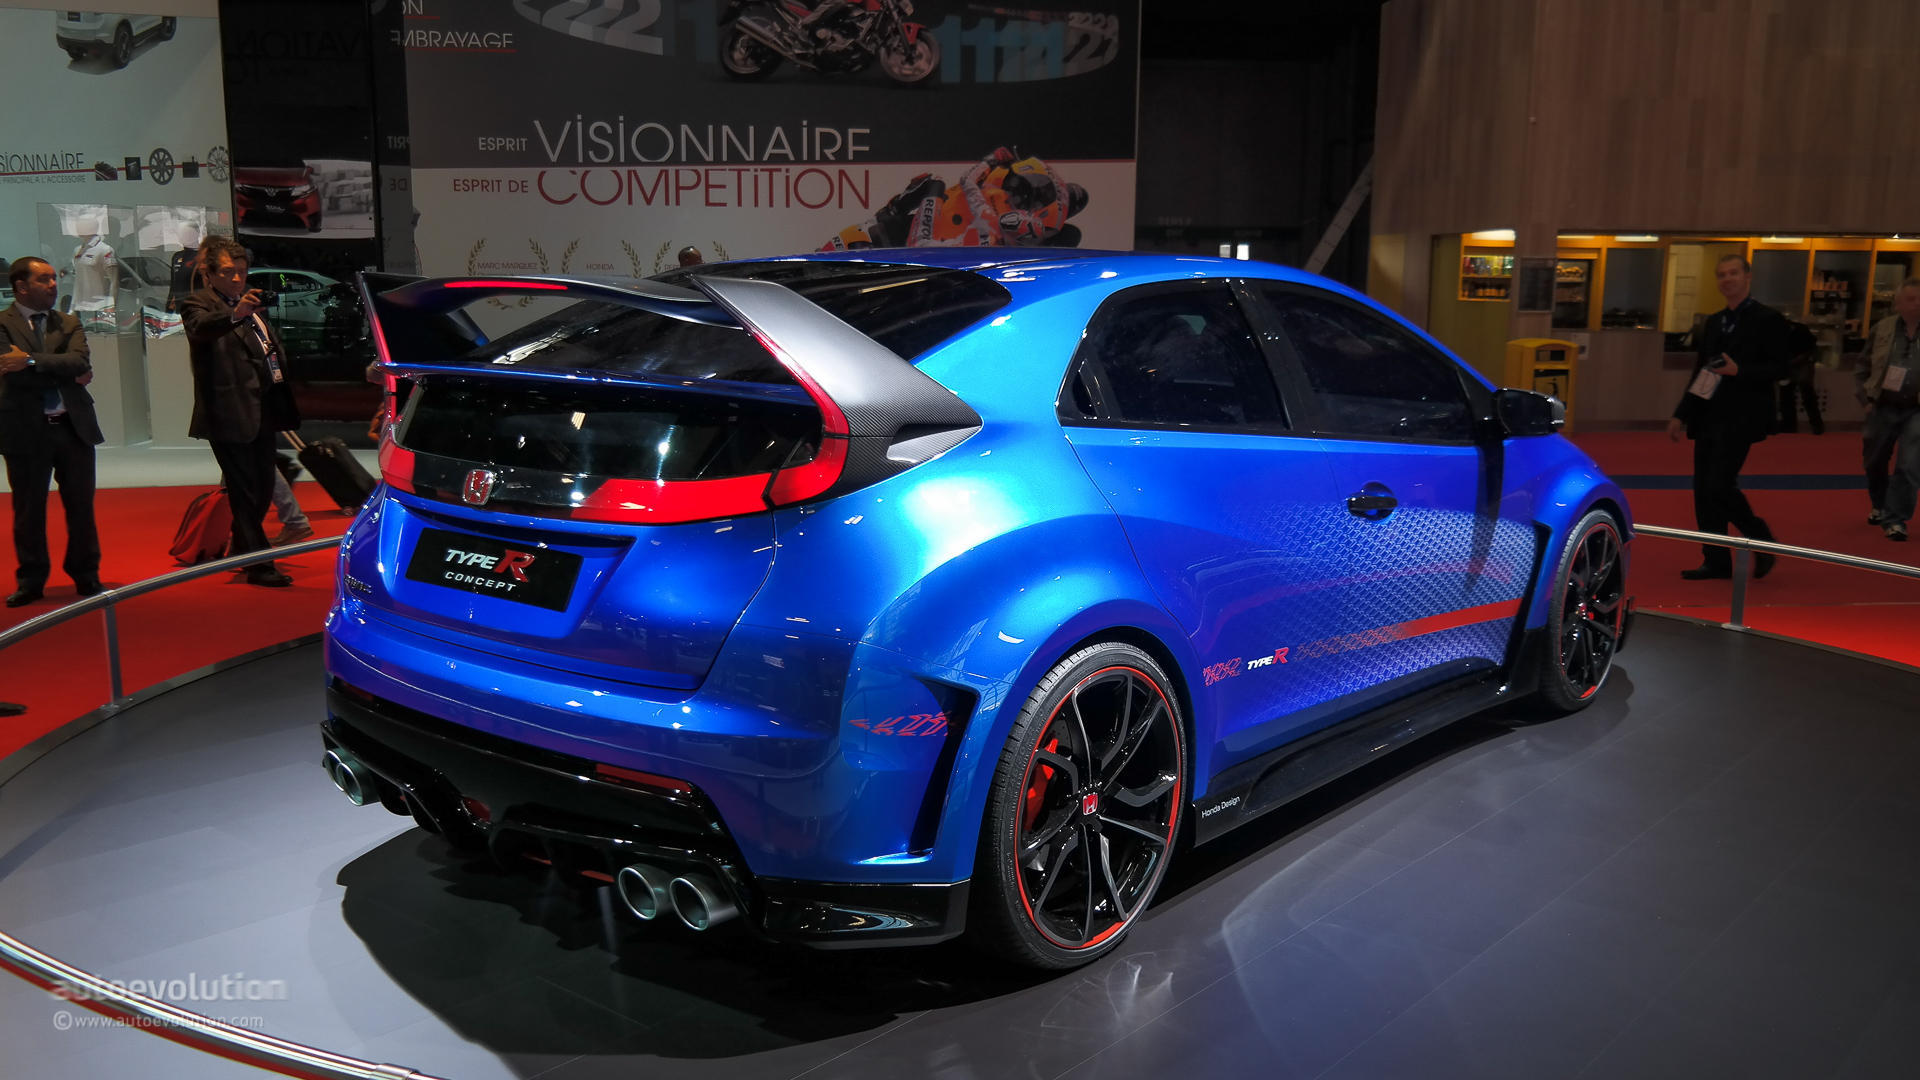 Civic Type R Awd >> Honda Civic Type R Hot Hatch Confirmed for Australia - autoevolution